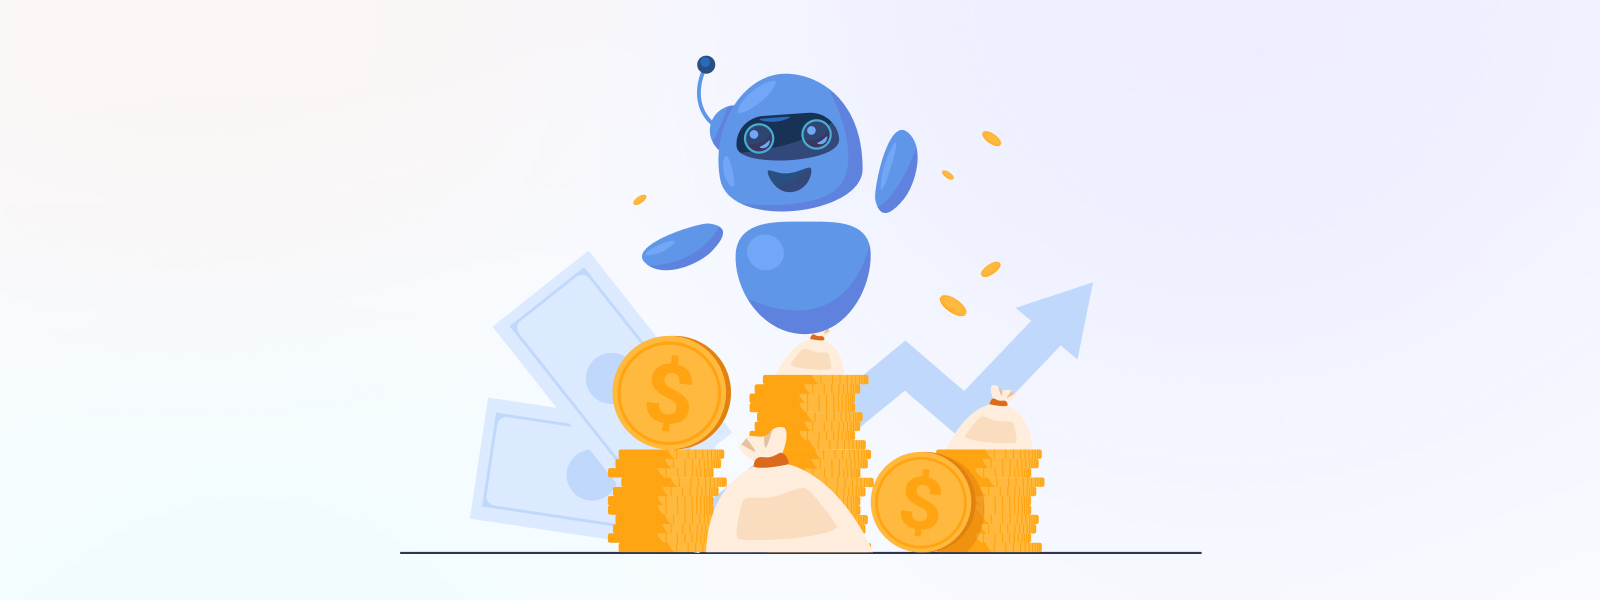 Chatbots in financial services